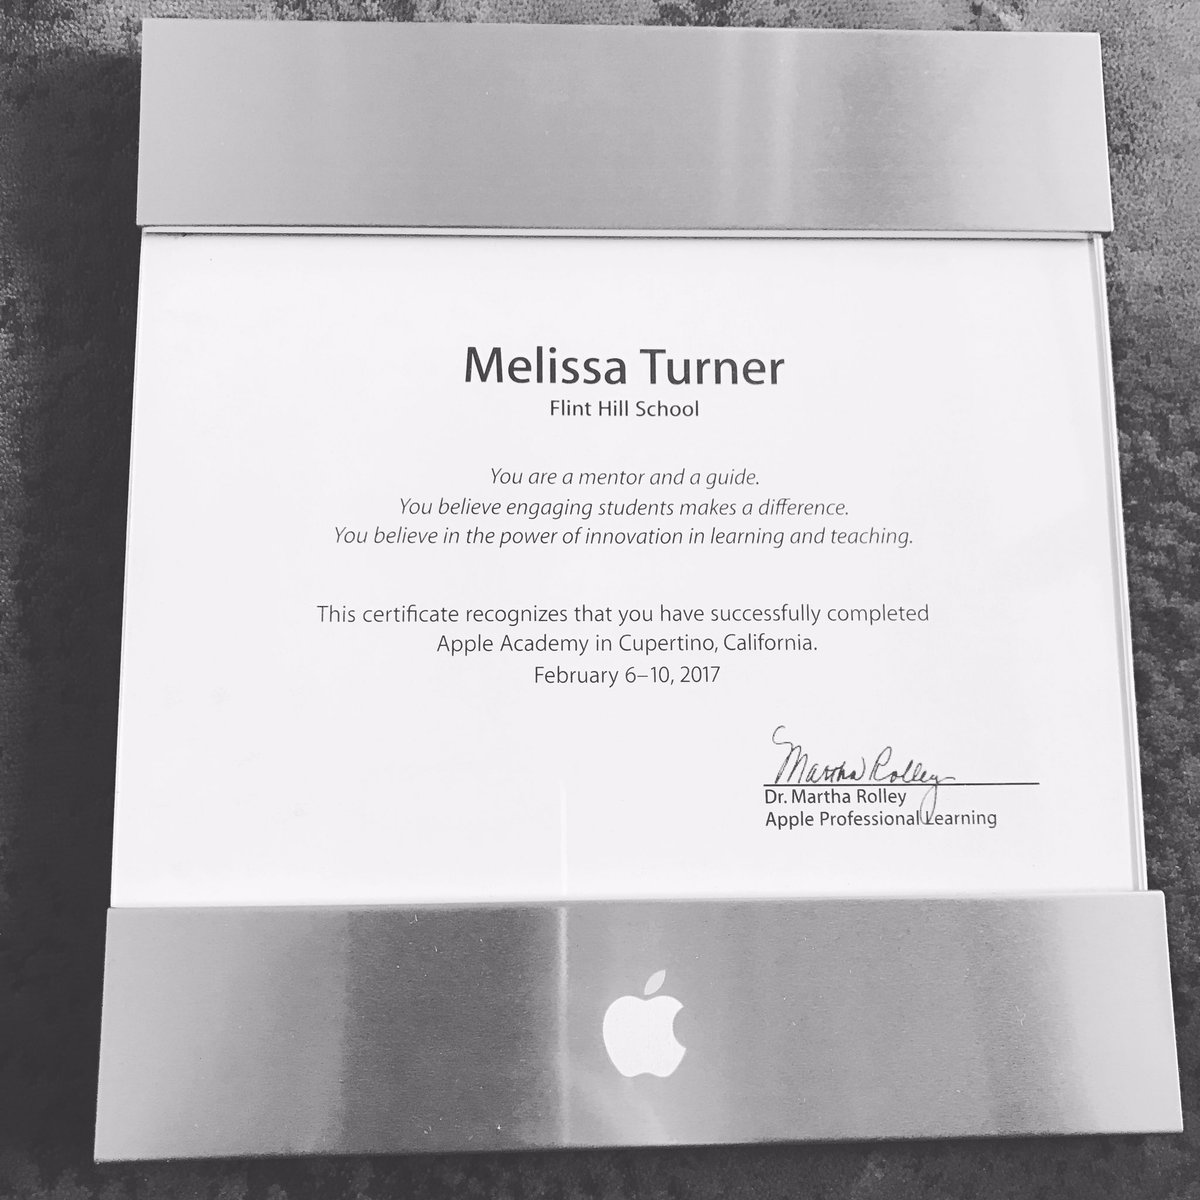 Melissa Turner On Twitter Officially An Apple Learning Specialist